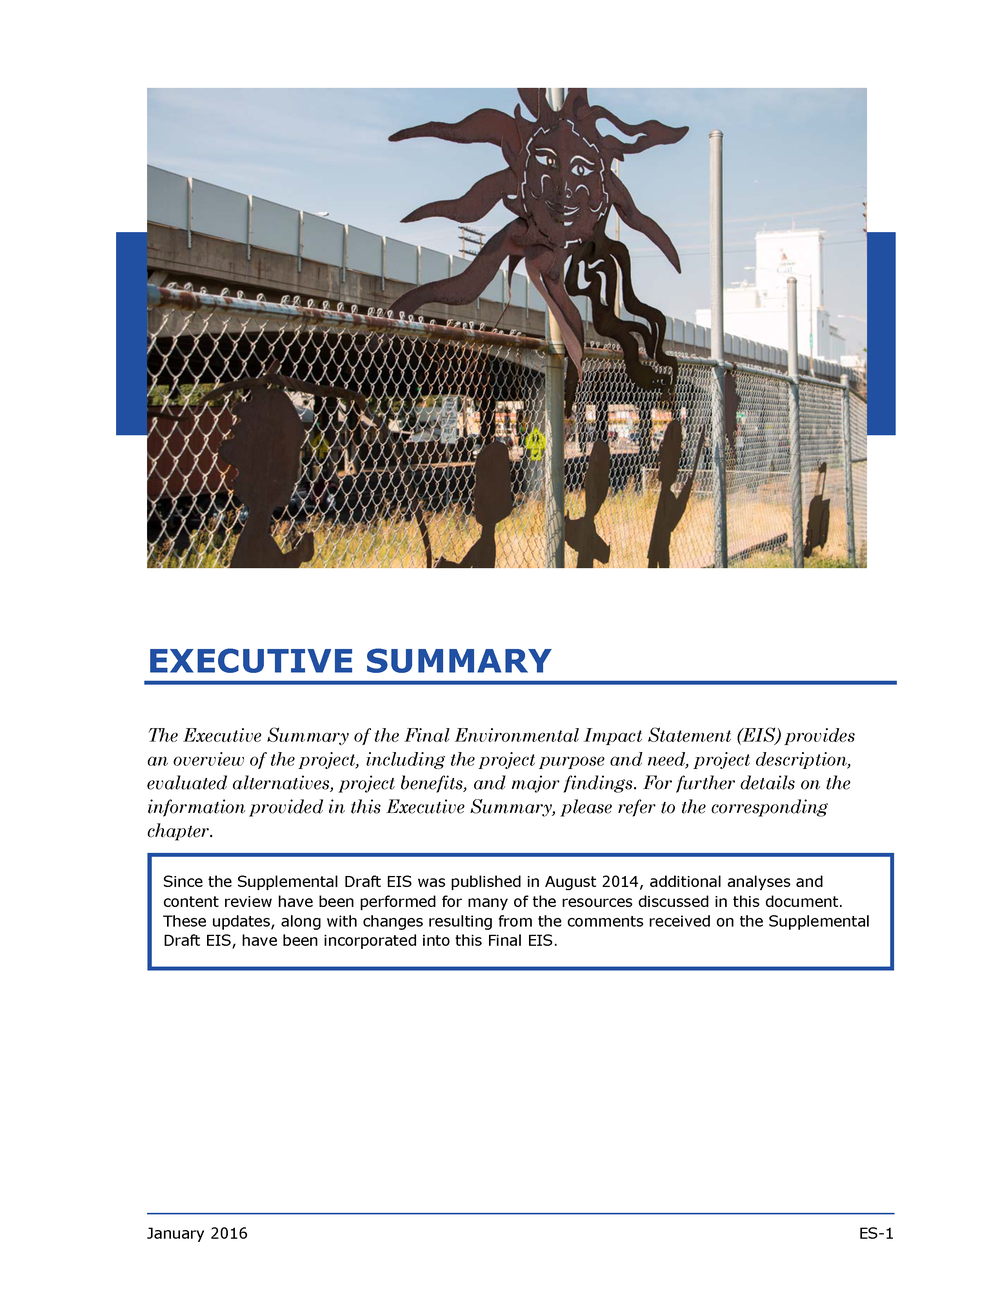 EIS Executive Summary